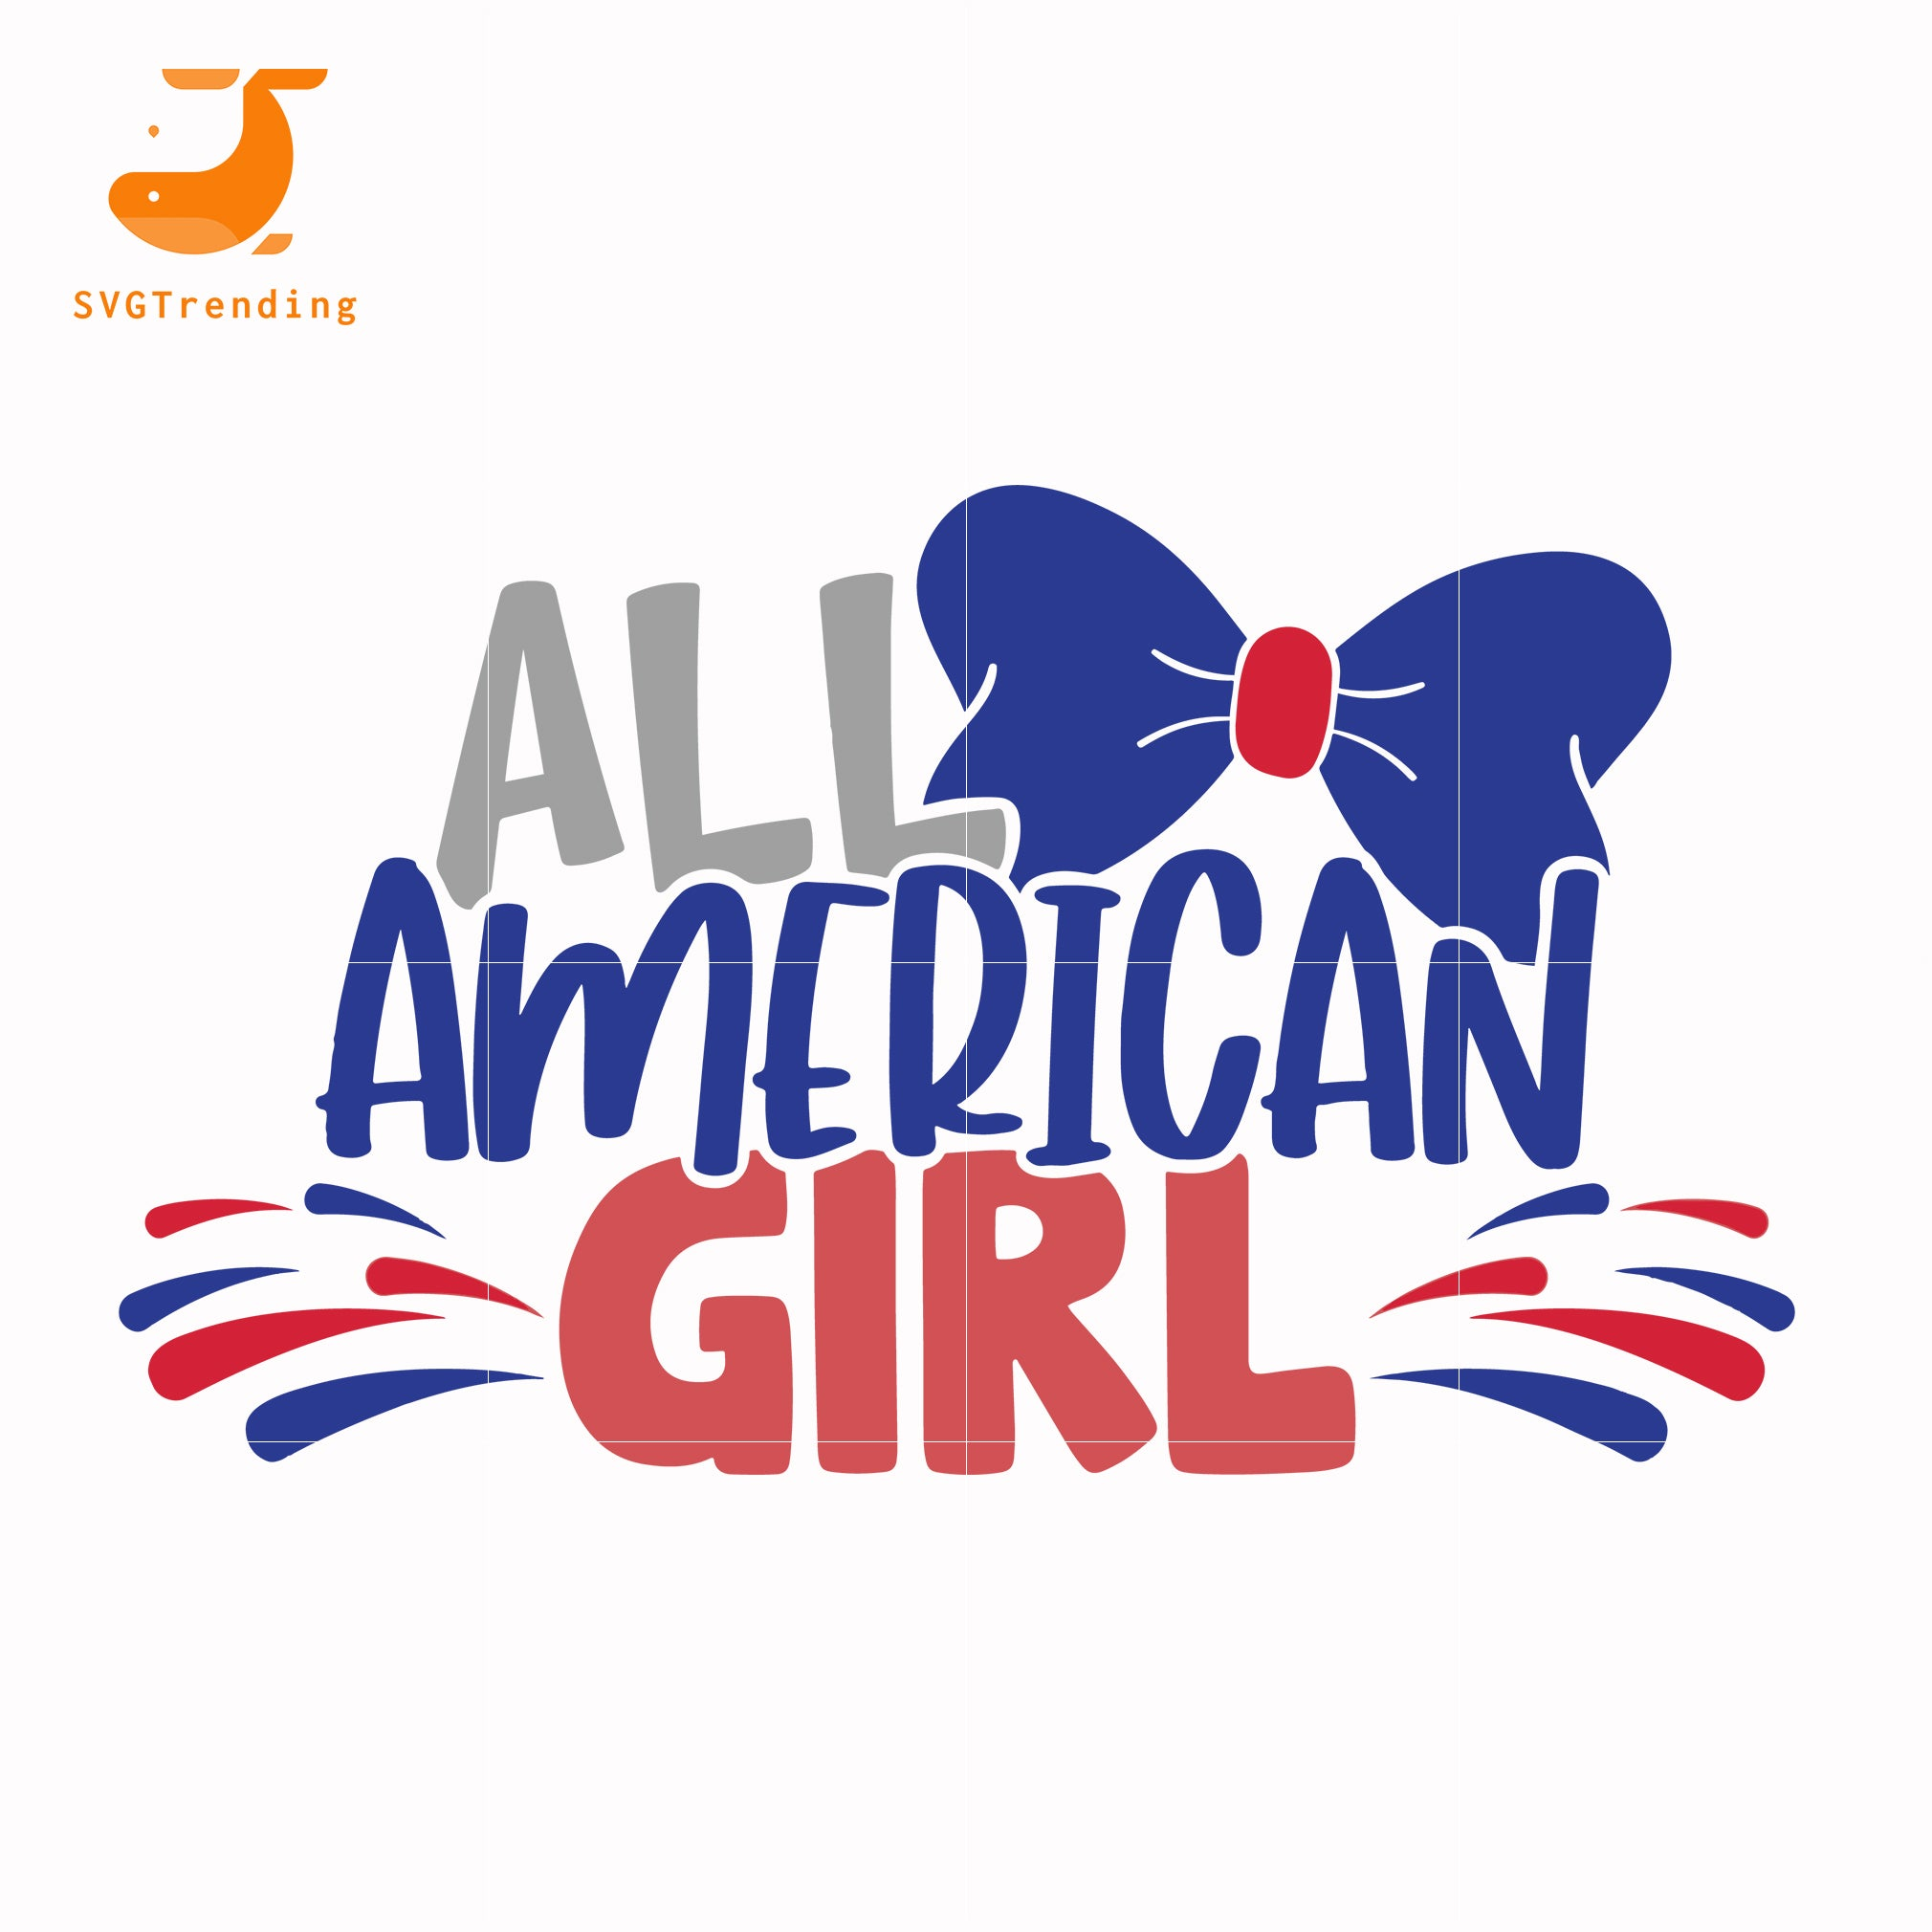 All american girl svg, png, dxf, eps, digital file